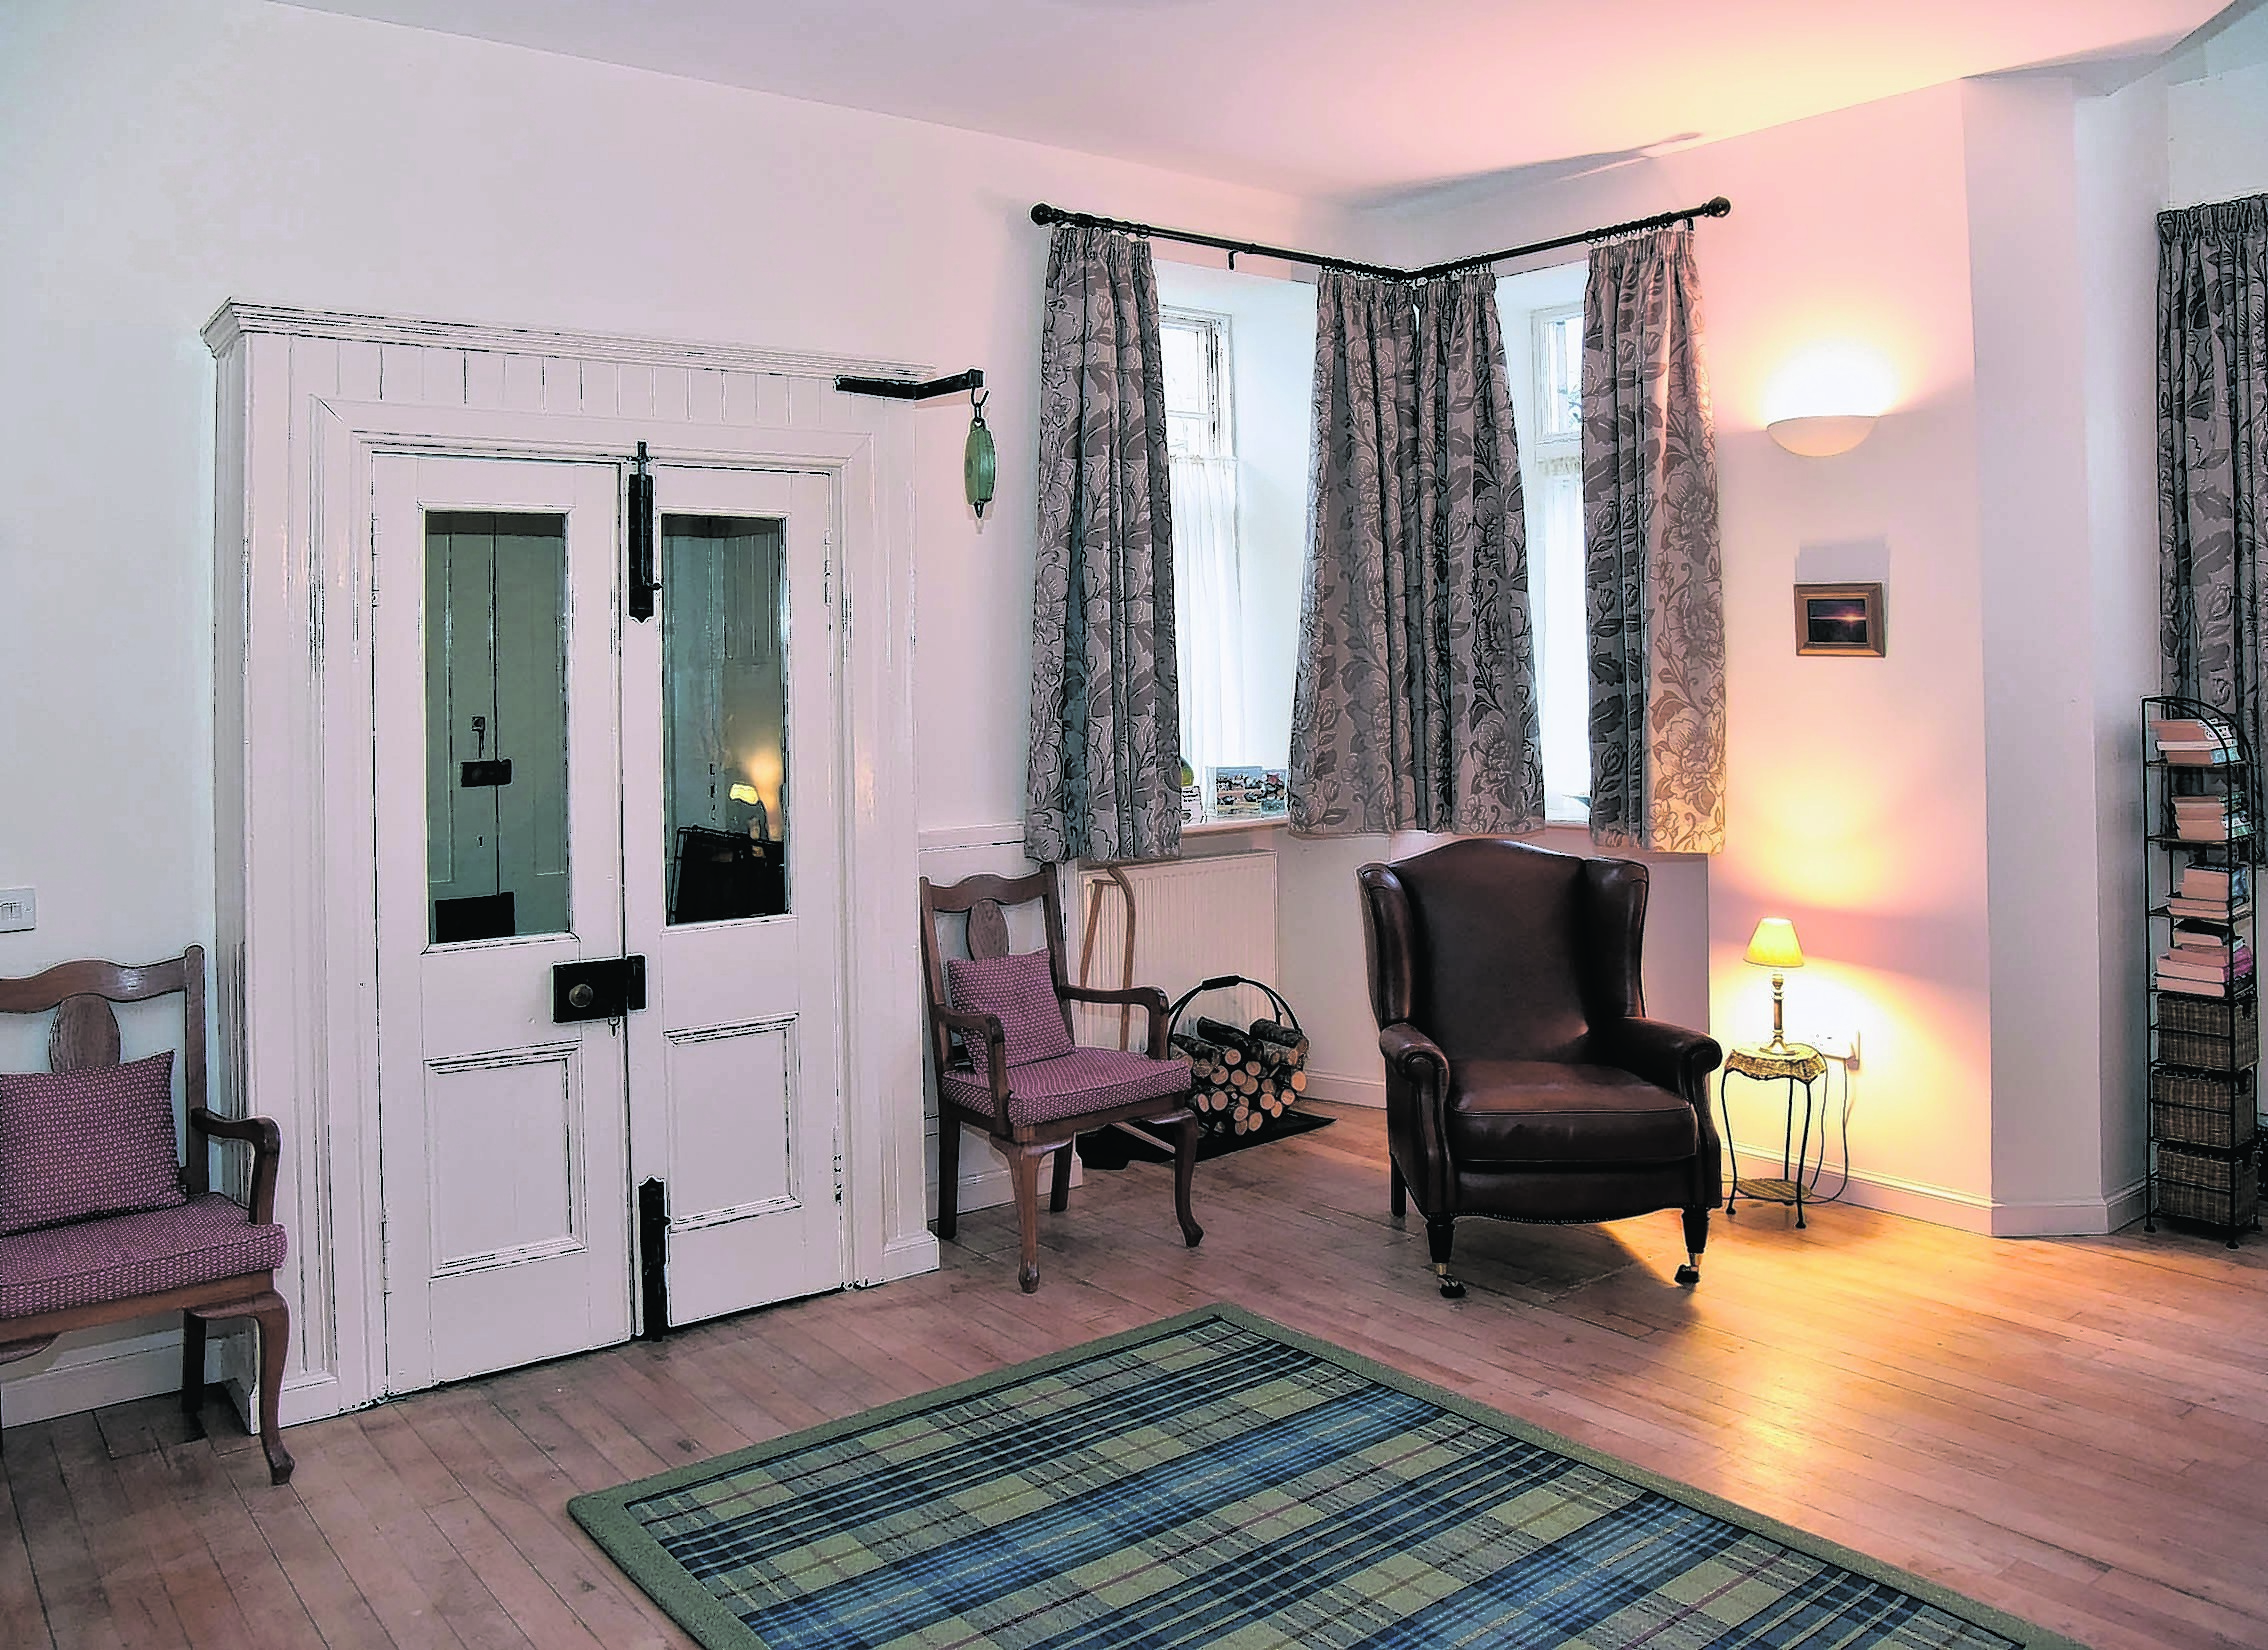 Beachside Cottage and Bothy Golspie. Interior of Cottage. Pic - Phil Downie